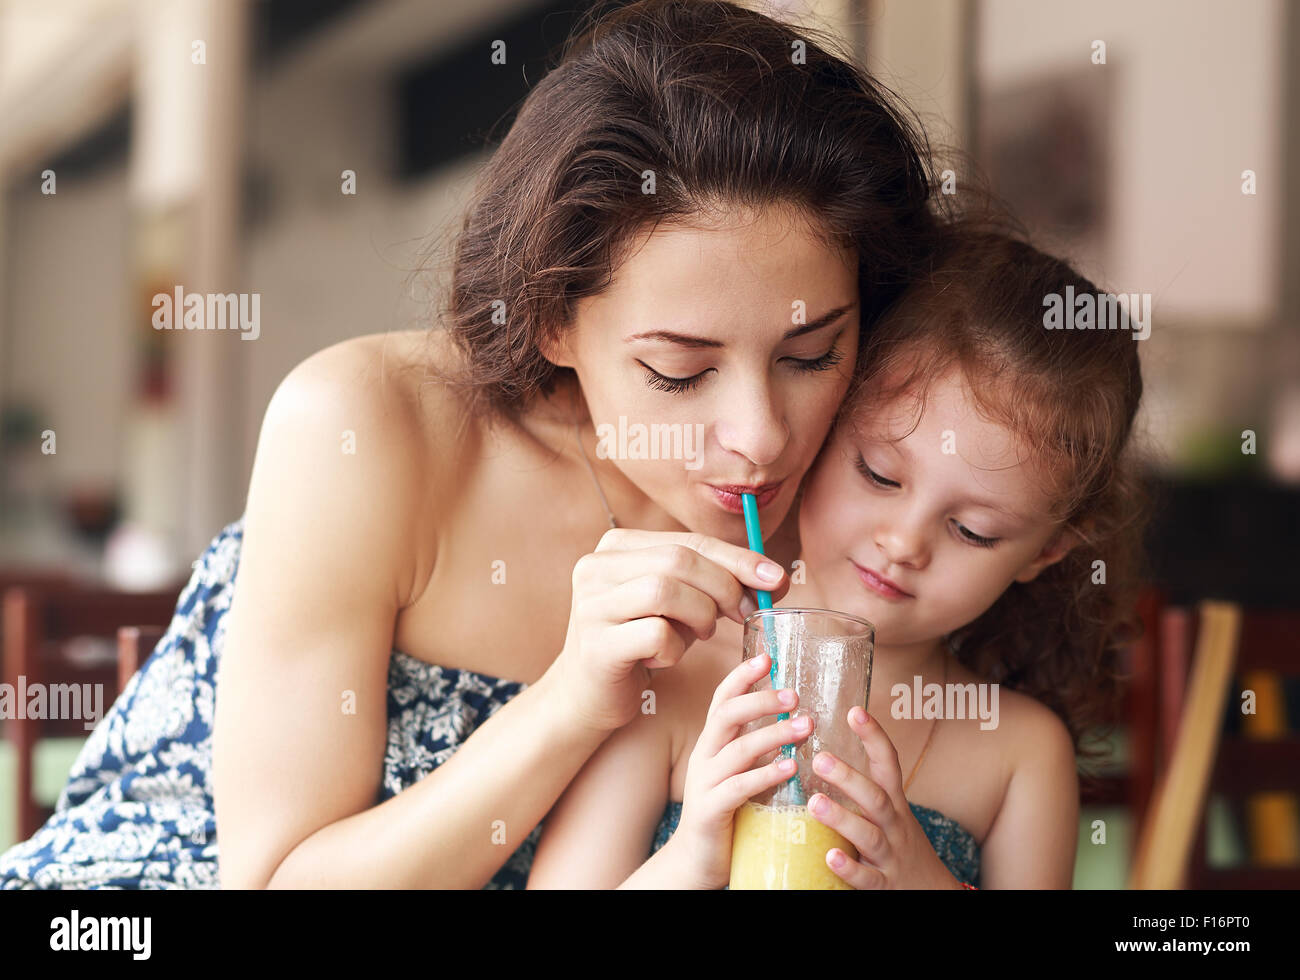 Happy family drinking orange juice and joying together in urban cafe. Closeup natural emotion portrait - Stock Image